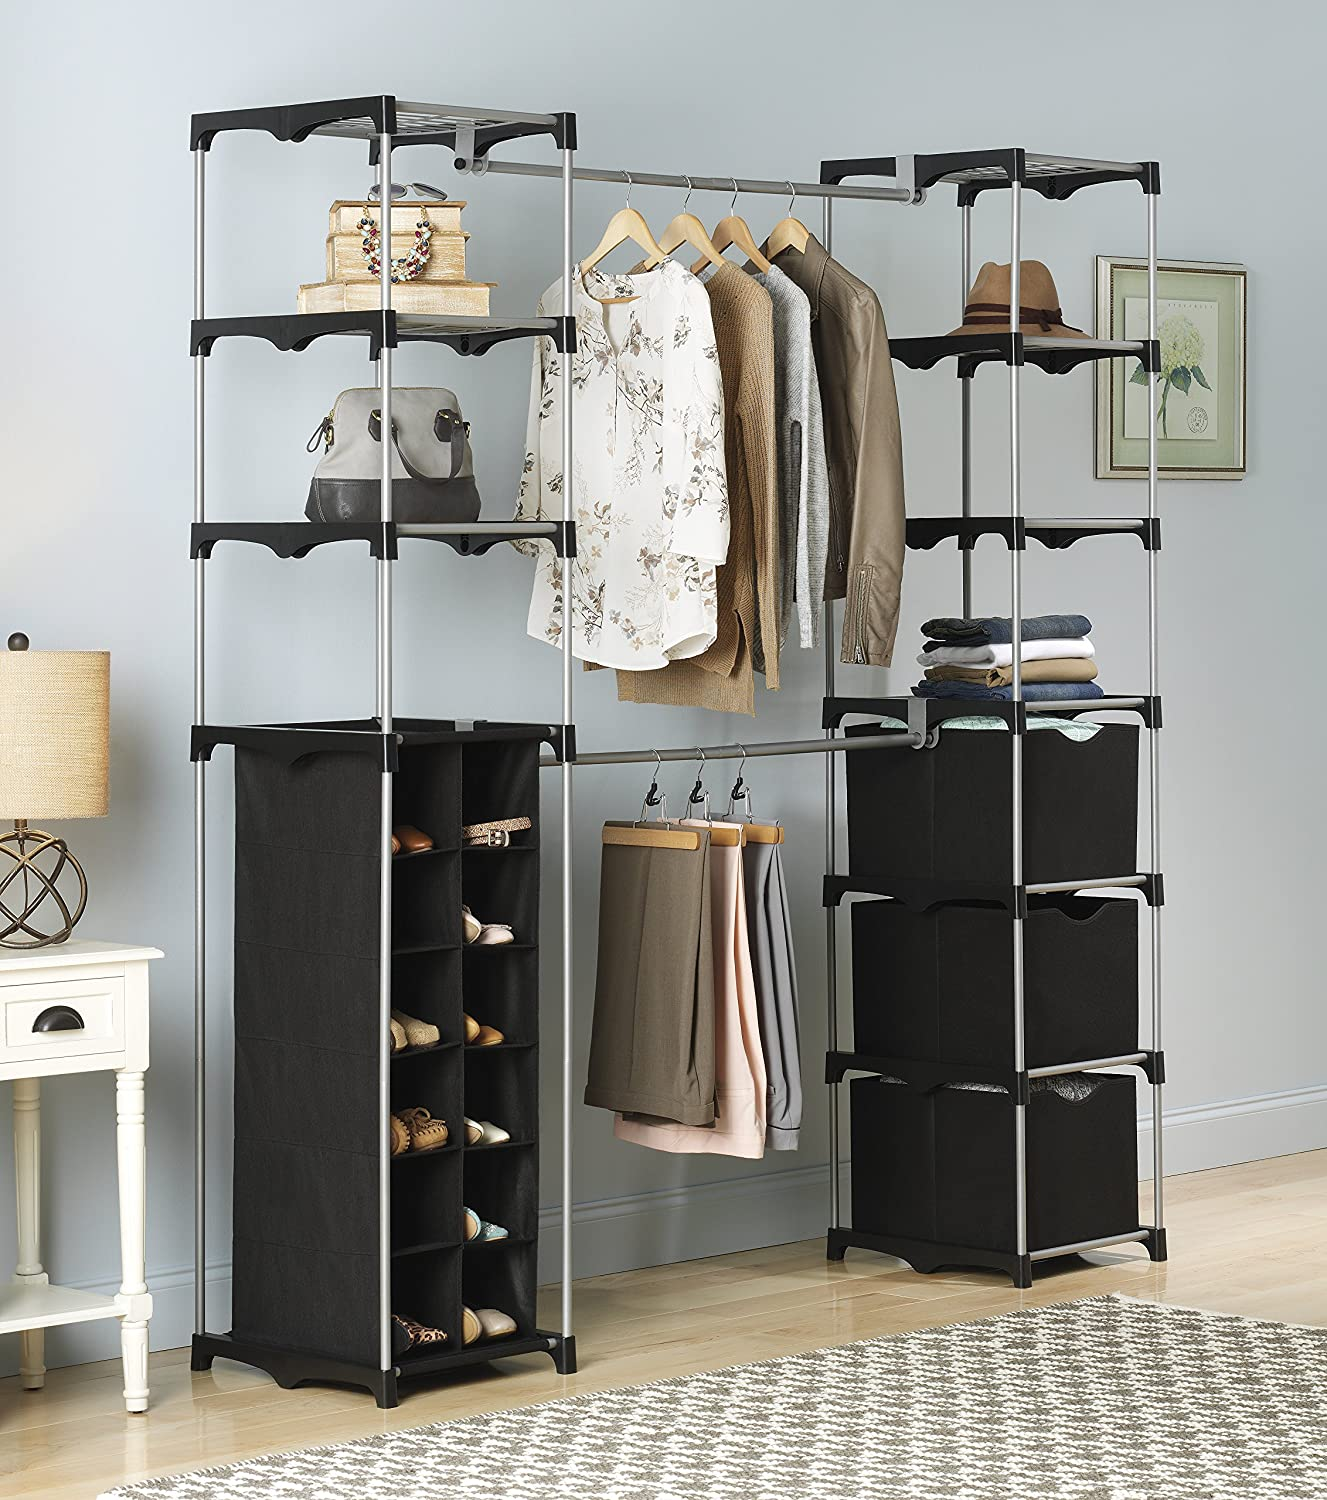 Amazon.com: Whitmor Deluxe Double Rod Adjustable Closet Organization  System: Home U0026 Kitchen